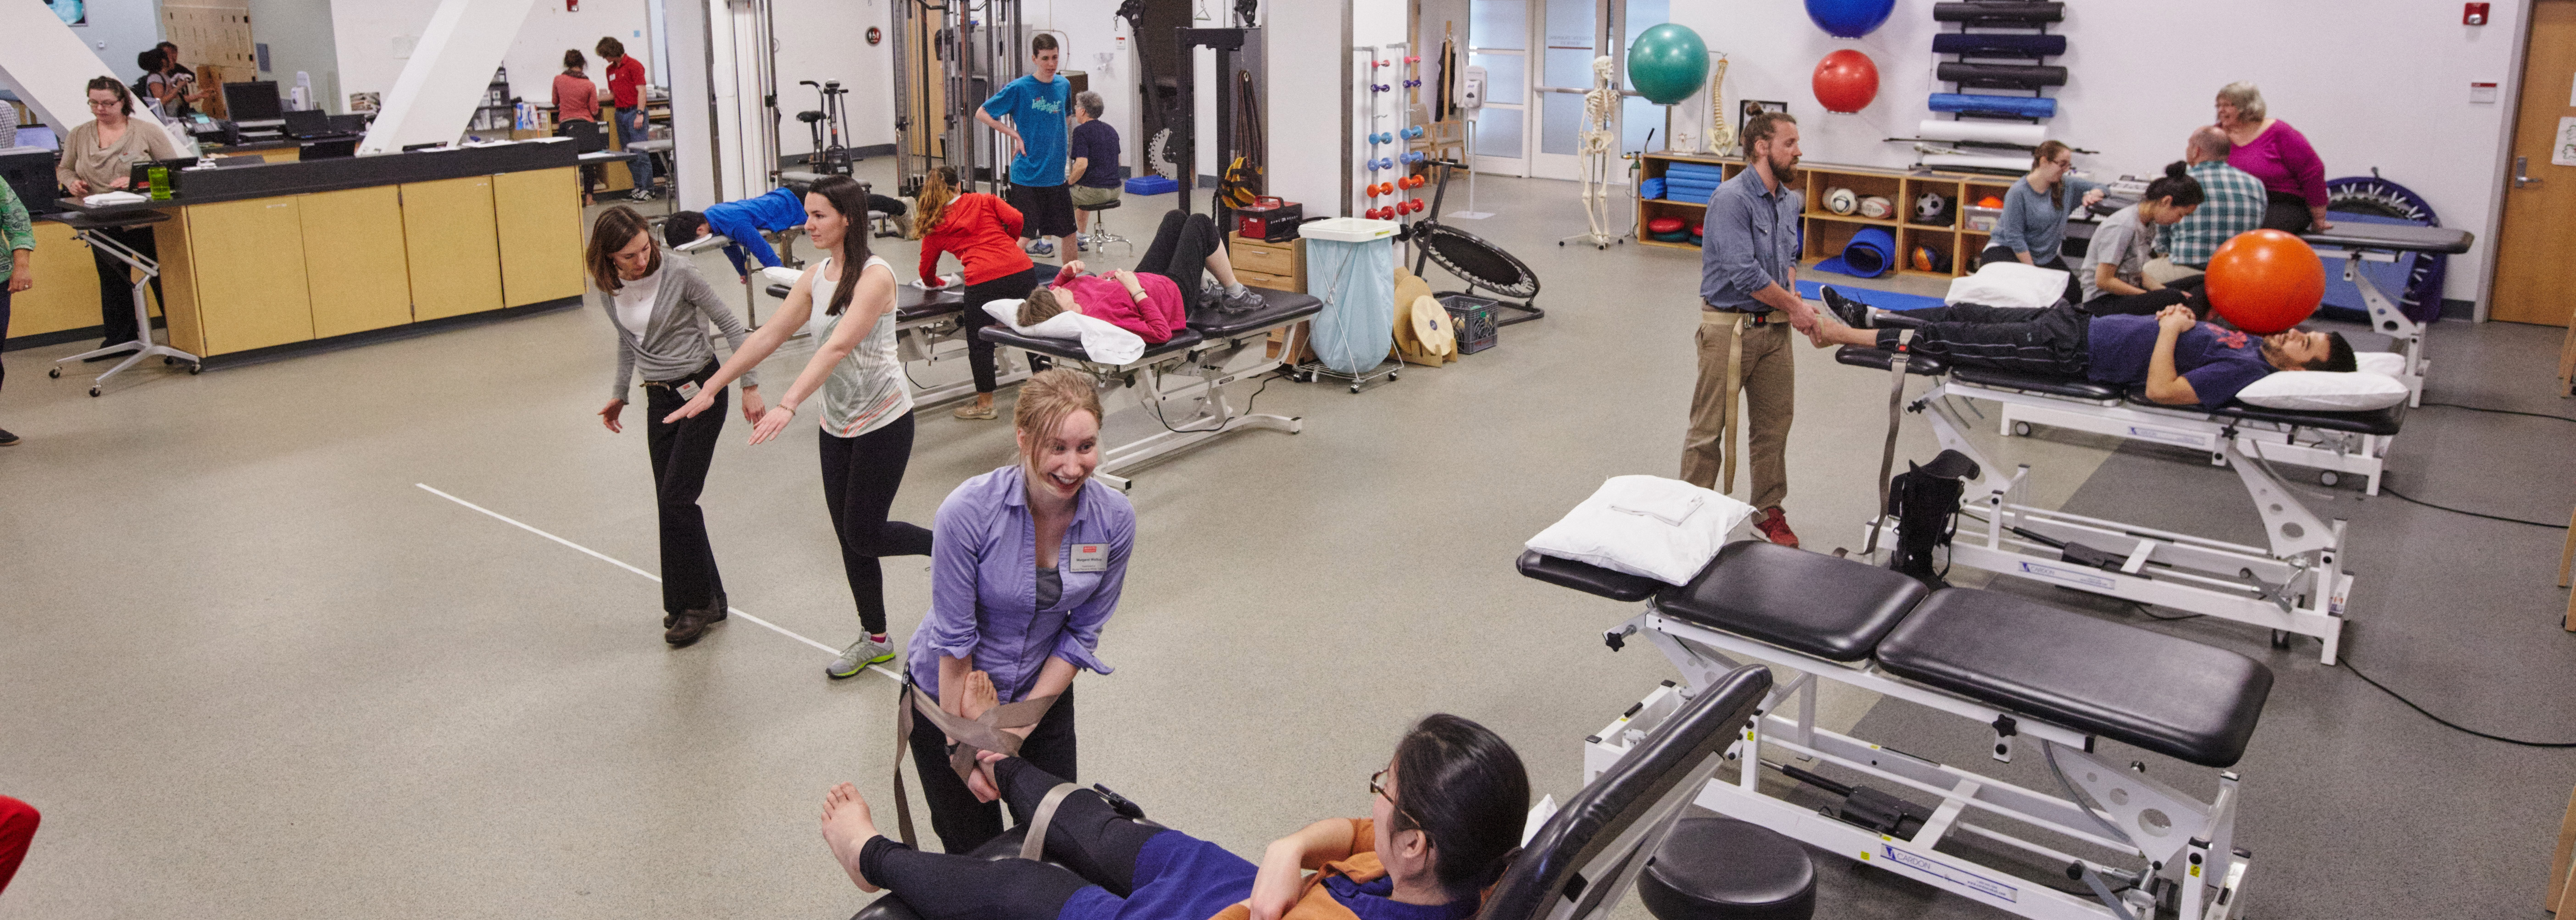 Boston physical therapy university - About Buptc